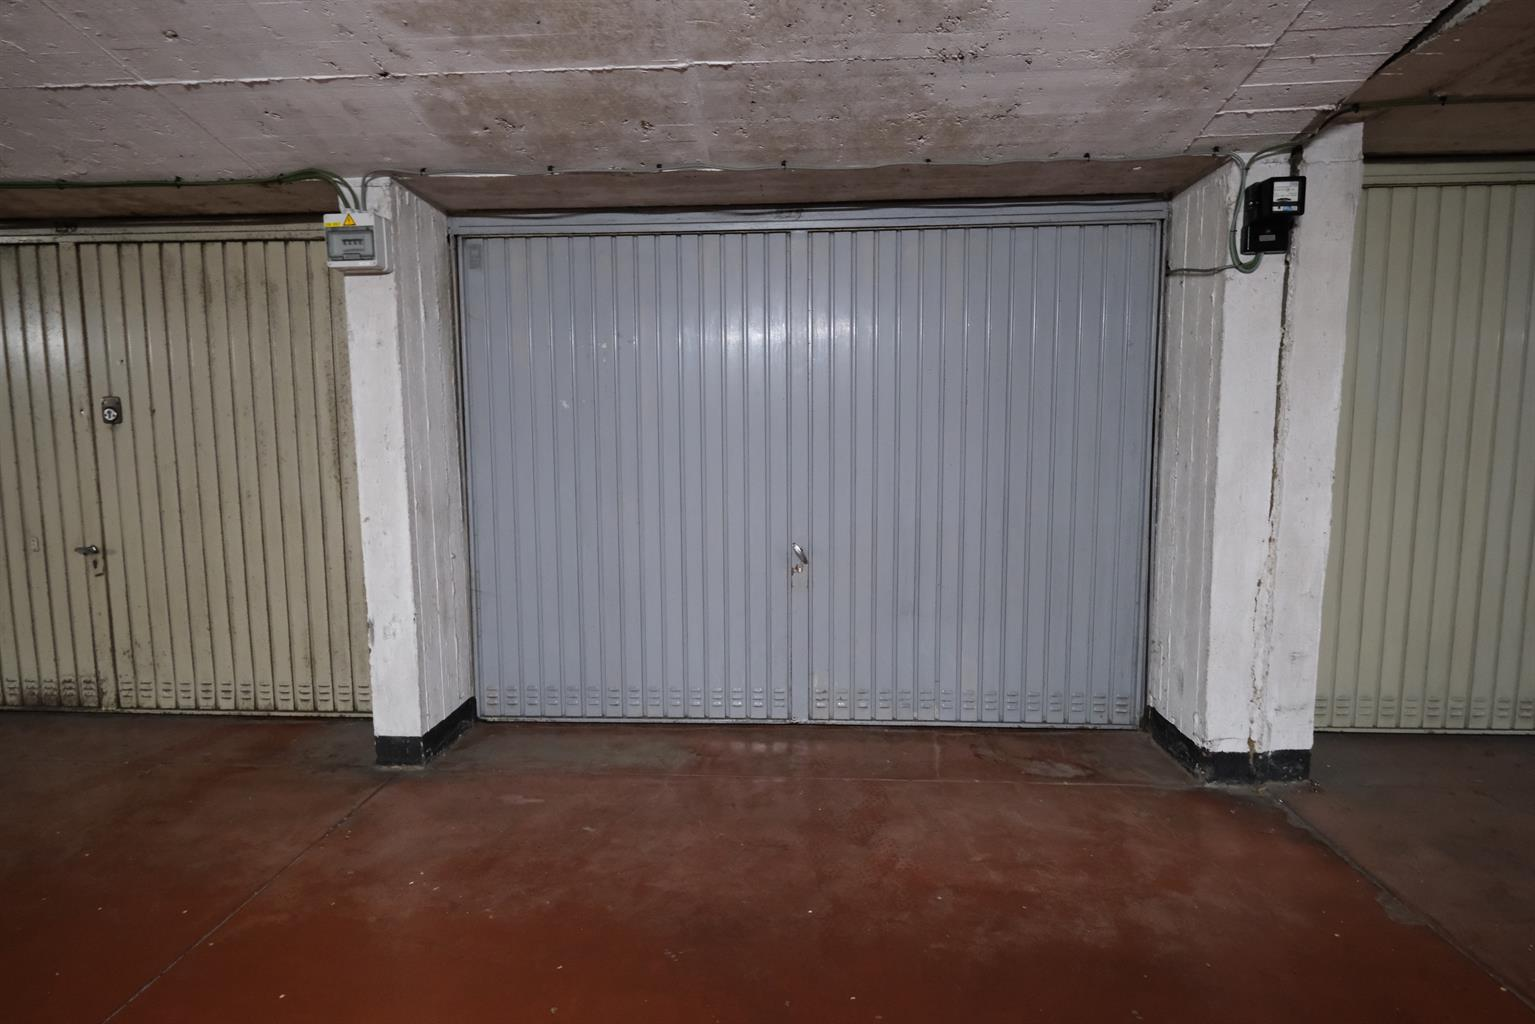 Garage (ferme) - Molenbeek-Saint-Jean - #4266646-0